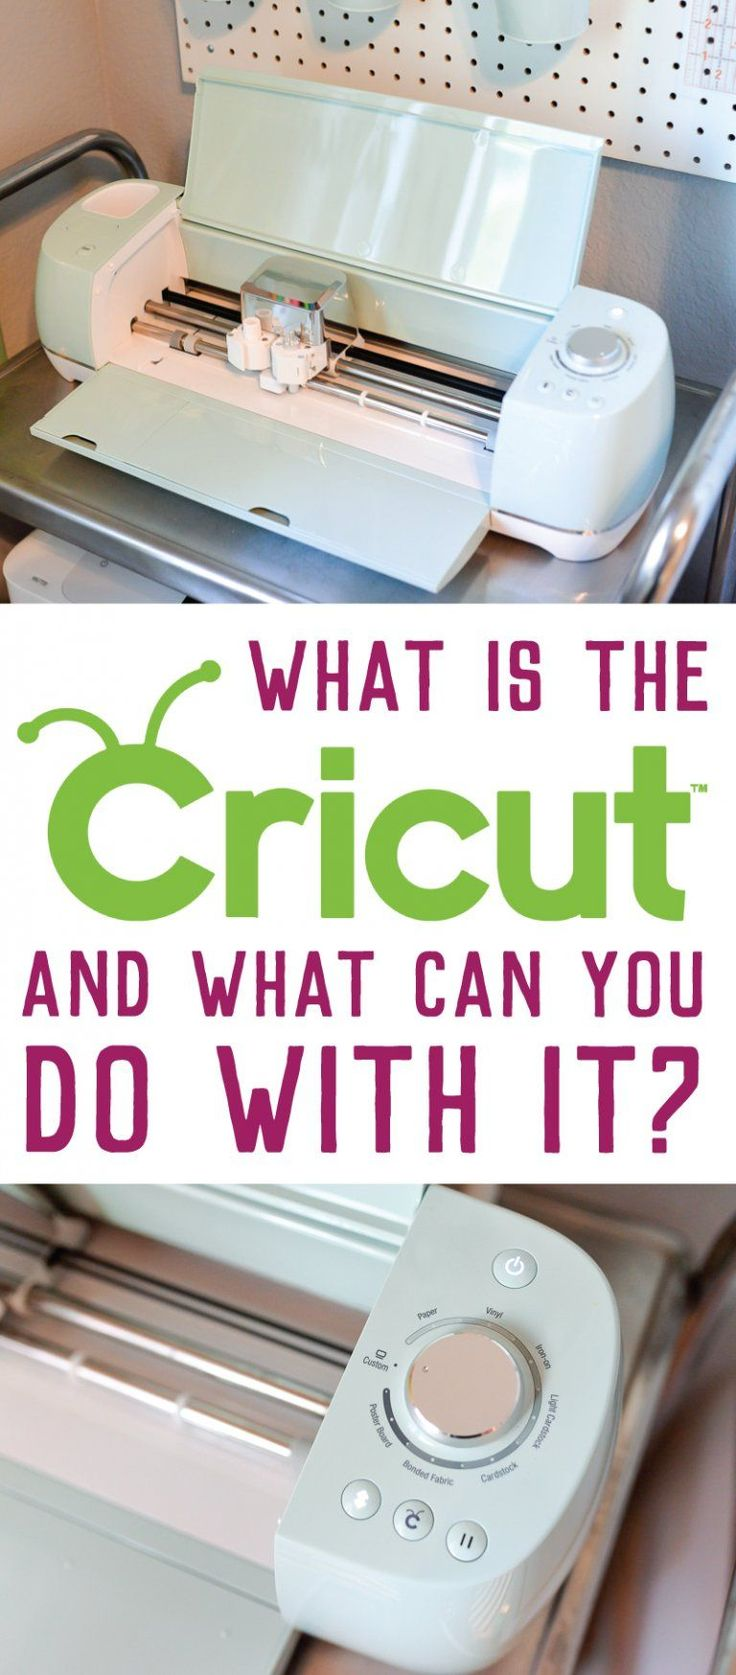 What is the Cricut Explore machine and what does it do? If all of your friends have this amazing electronic cutter, but you're clueless about what it is and what you can do with it, this post is for you. AD